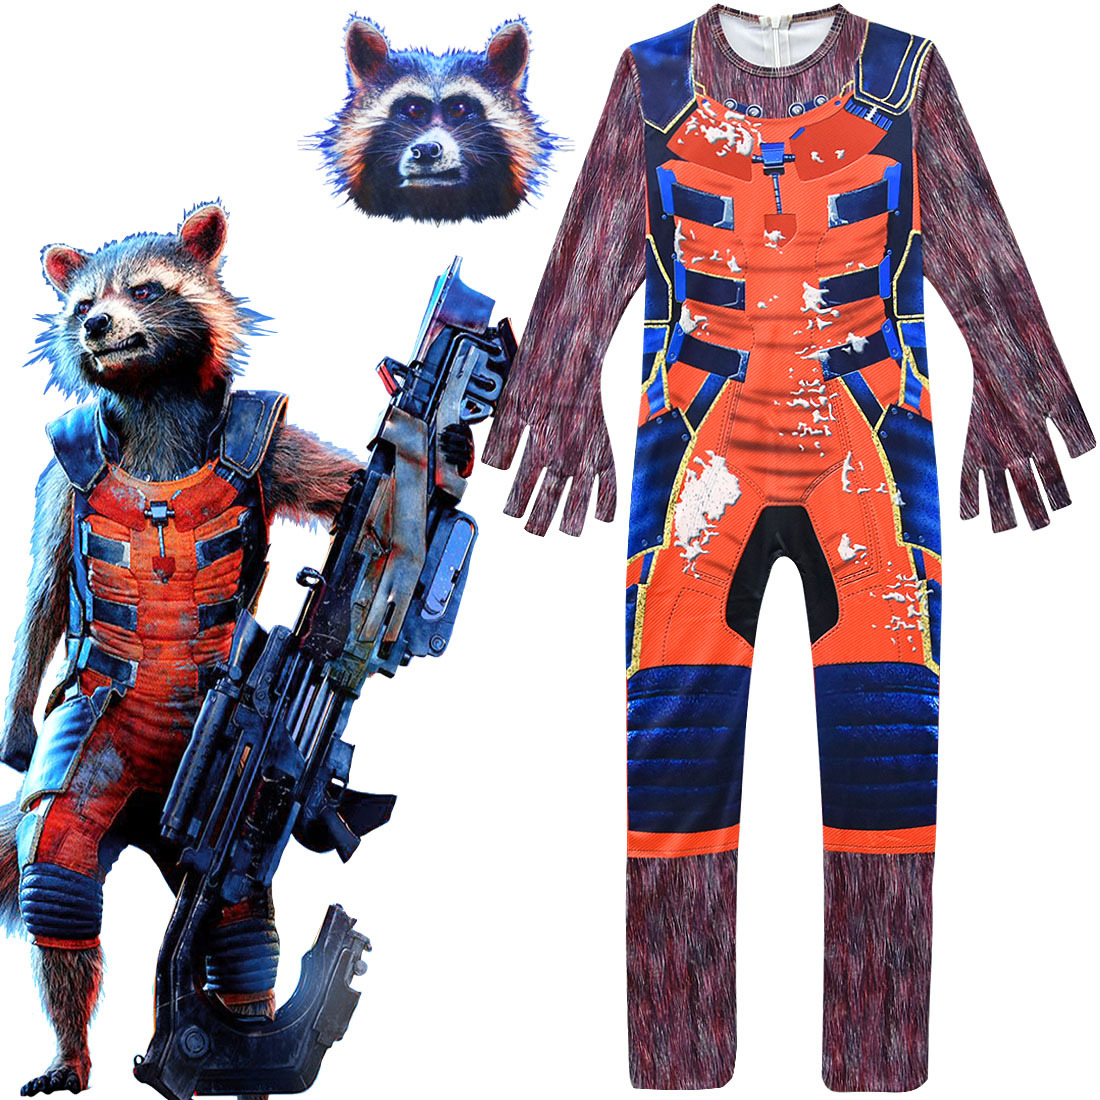 Avengers 4 Kids Boys Rocket Racoon Cosplay Costumes + Mask Superhero Cosplay Halloween Masquerade Party Rocket Racoon Role Play